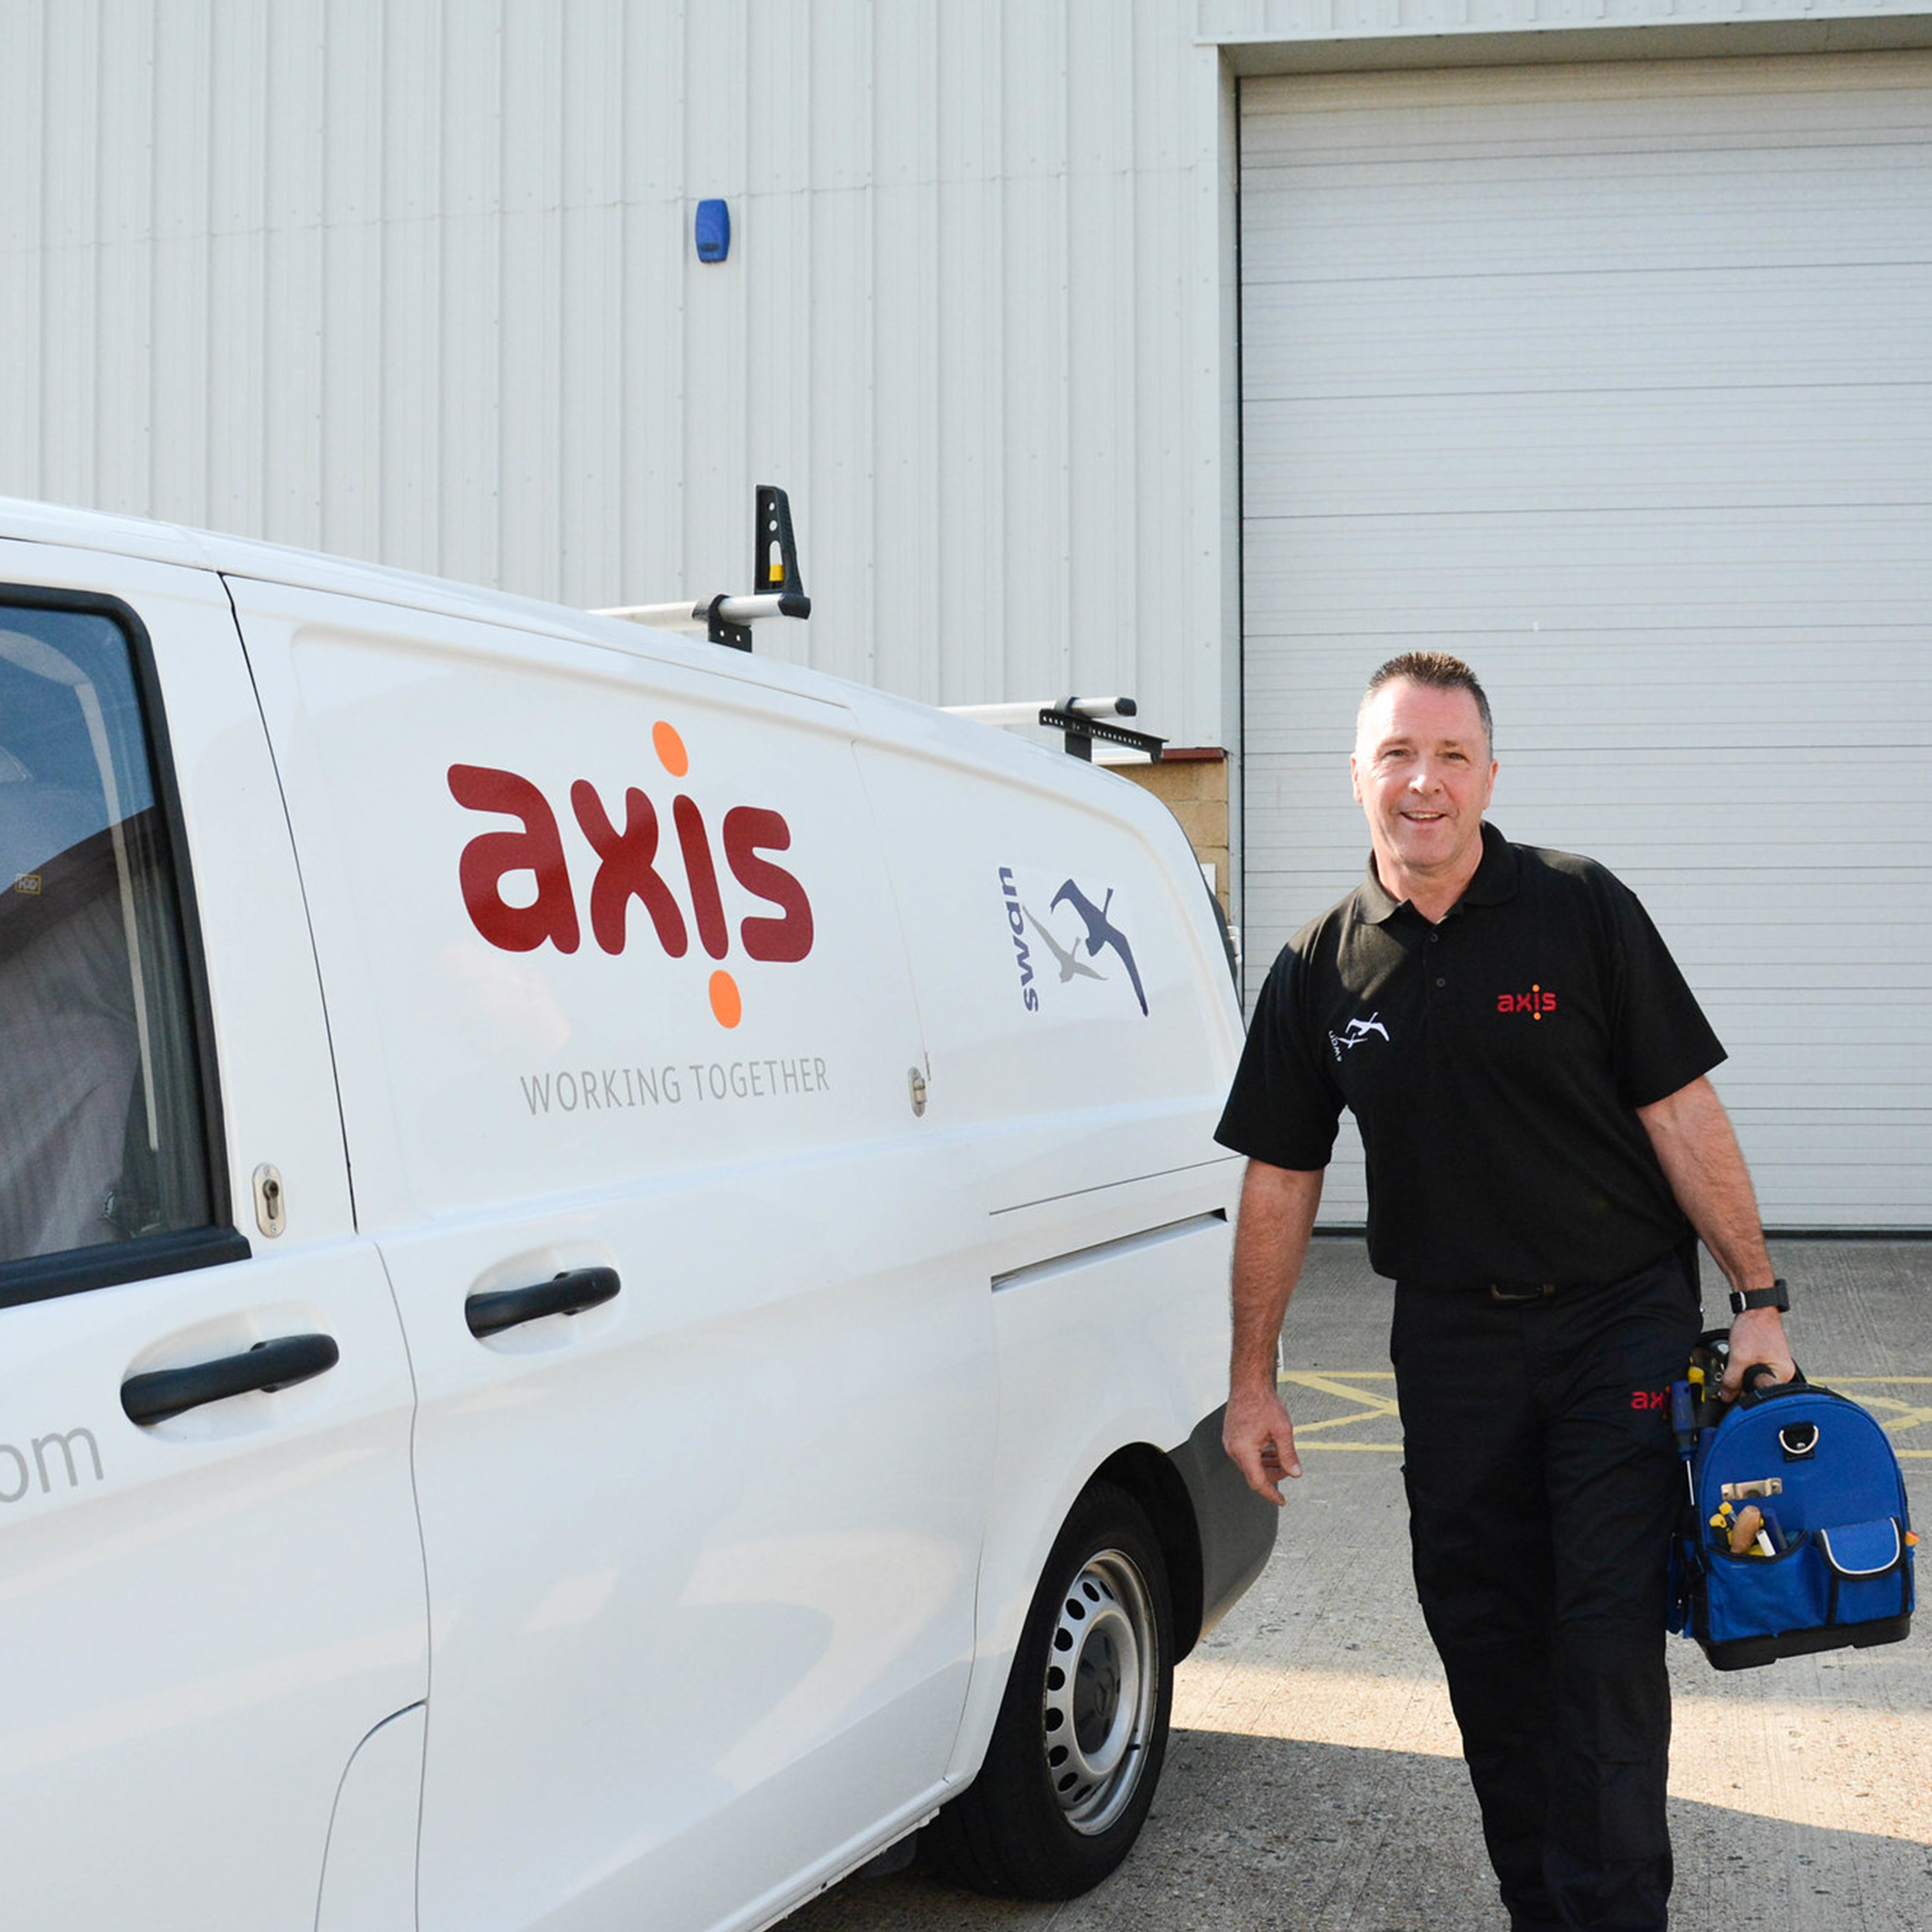 Axis and Swan operative standing beside a van